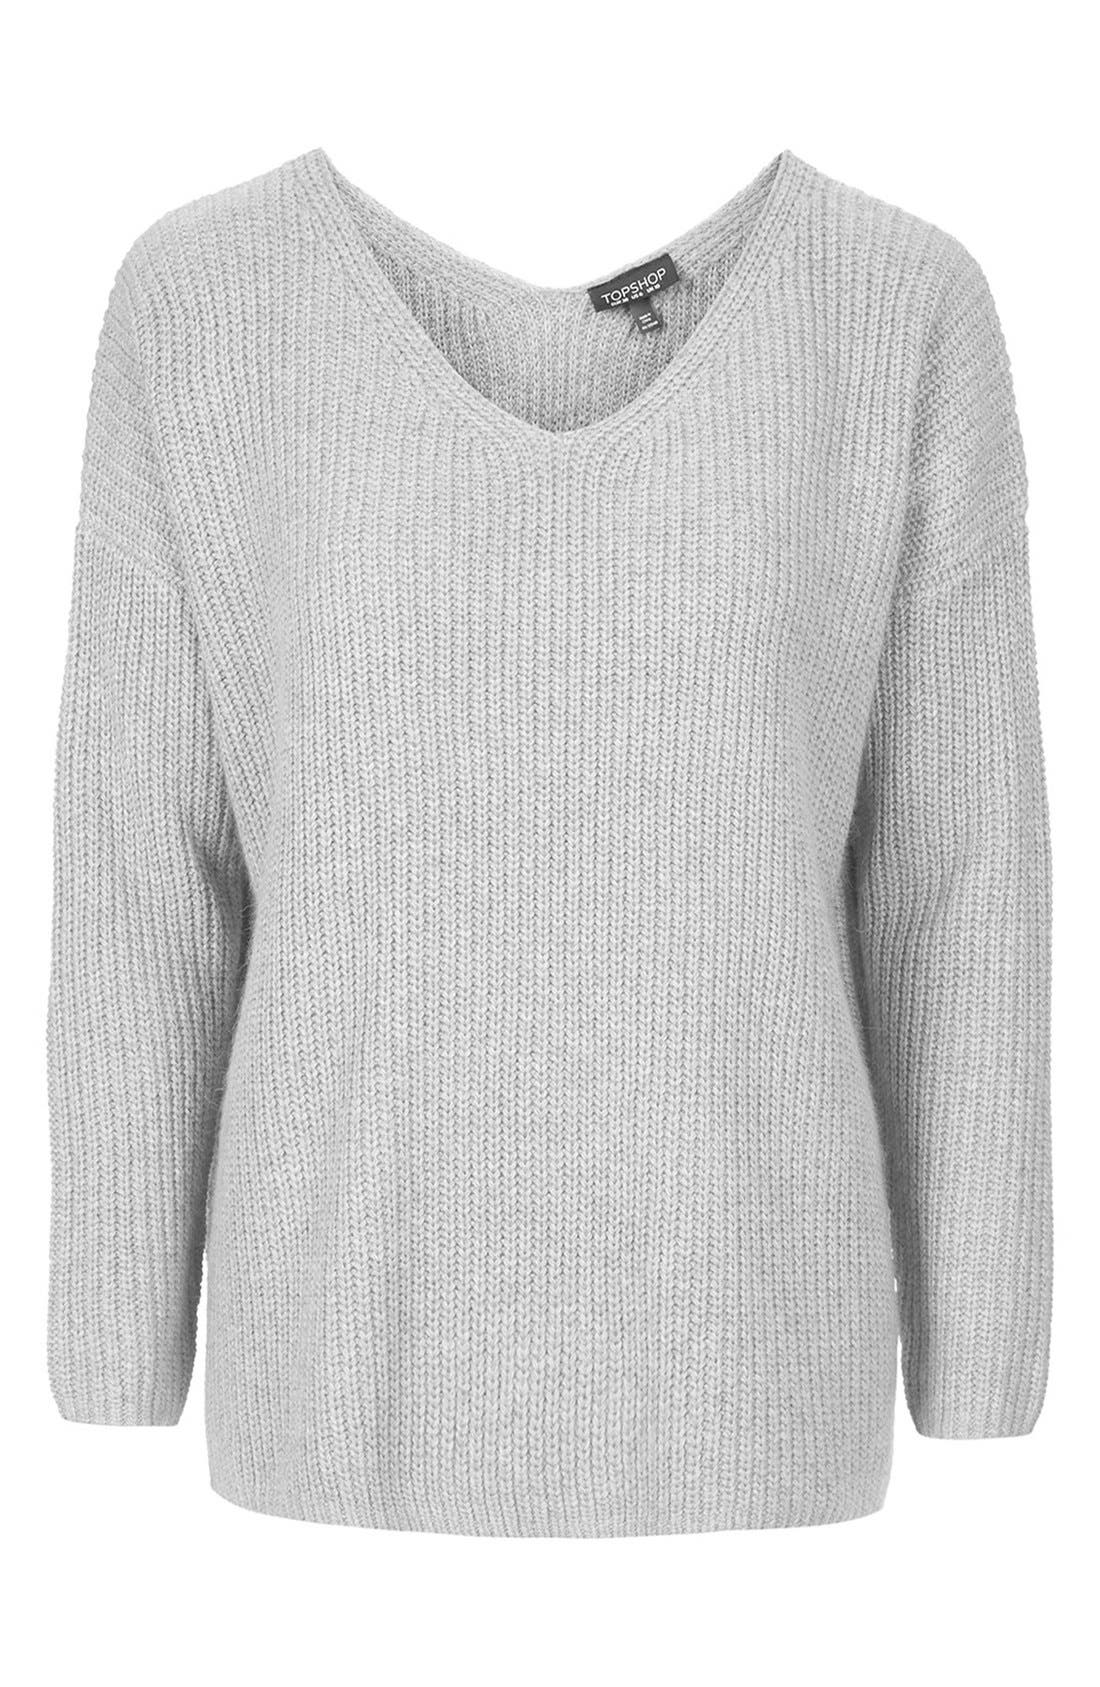 Alternate Image 2  - Topshop Double V-Neck Rib Sweater